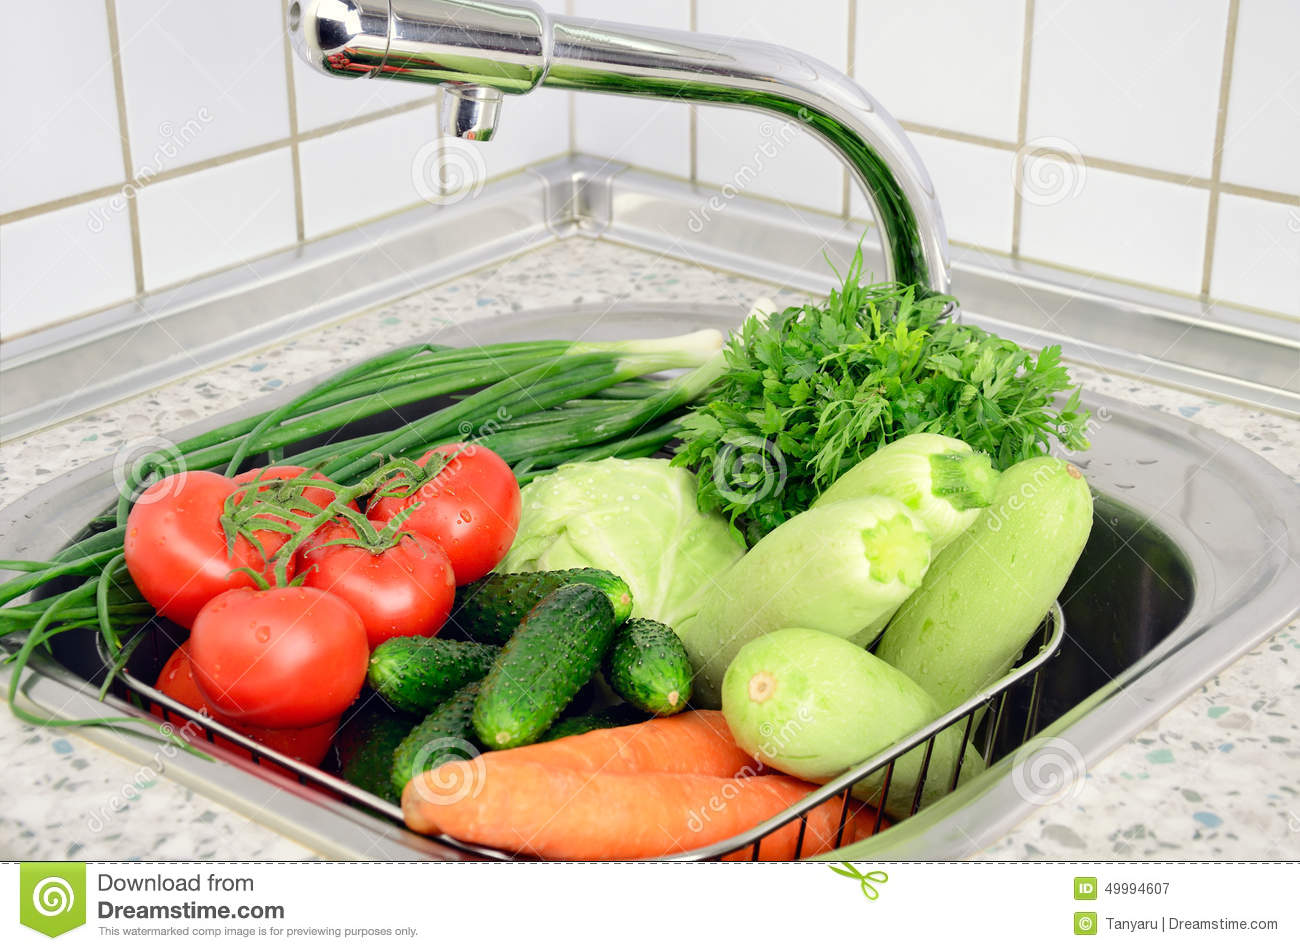 Vegetables In The Sink Under The Tap Stock Photo - Image: 49994607